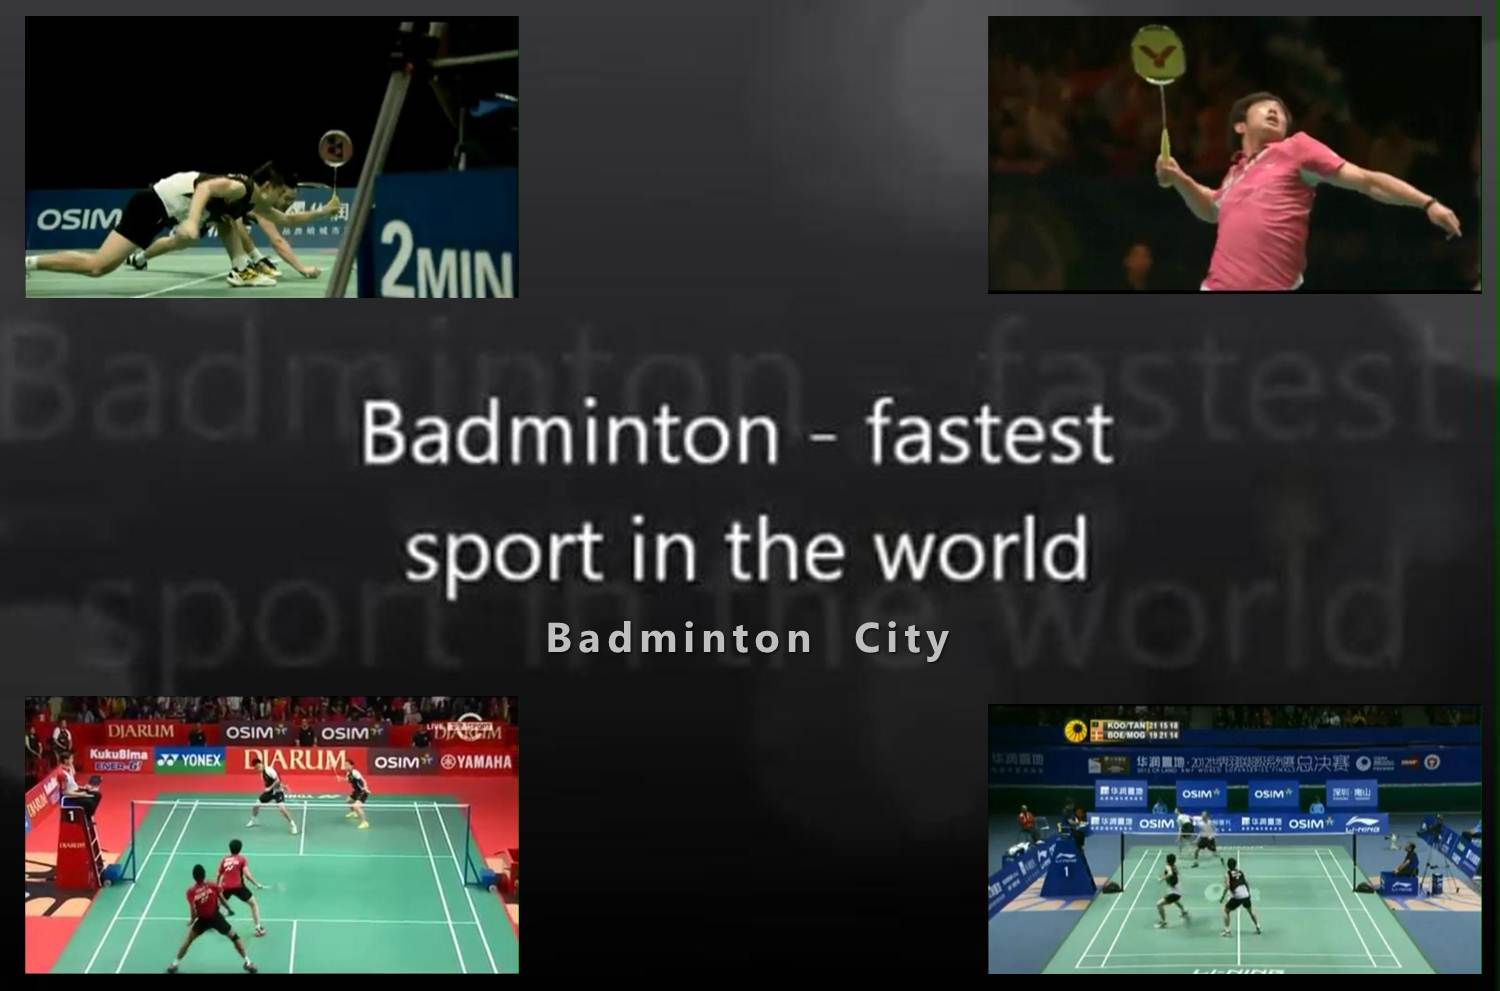 کلیپ بدمینتونی - Badminton - Fastest Sport in the World